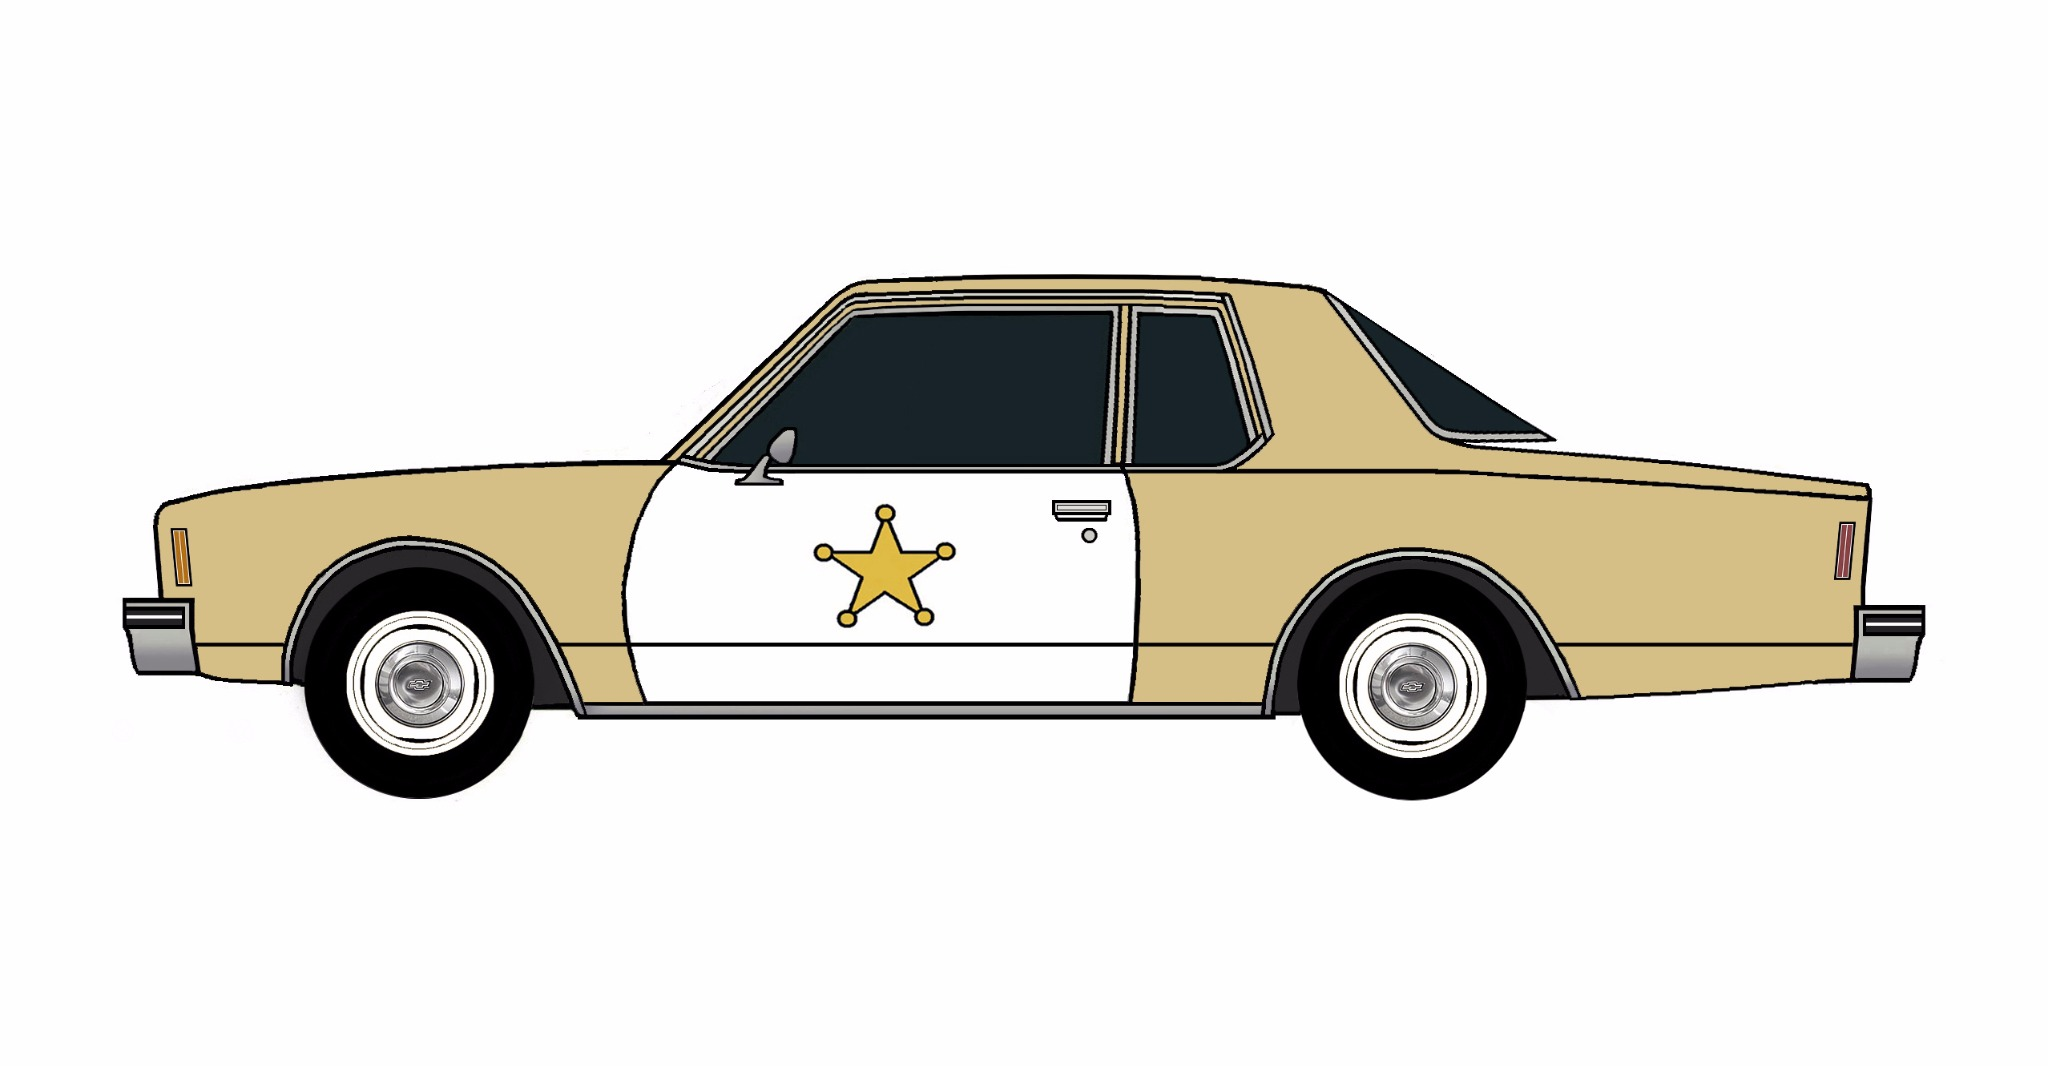 1978 Chevy Impala Police Coupe DESERT TAN